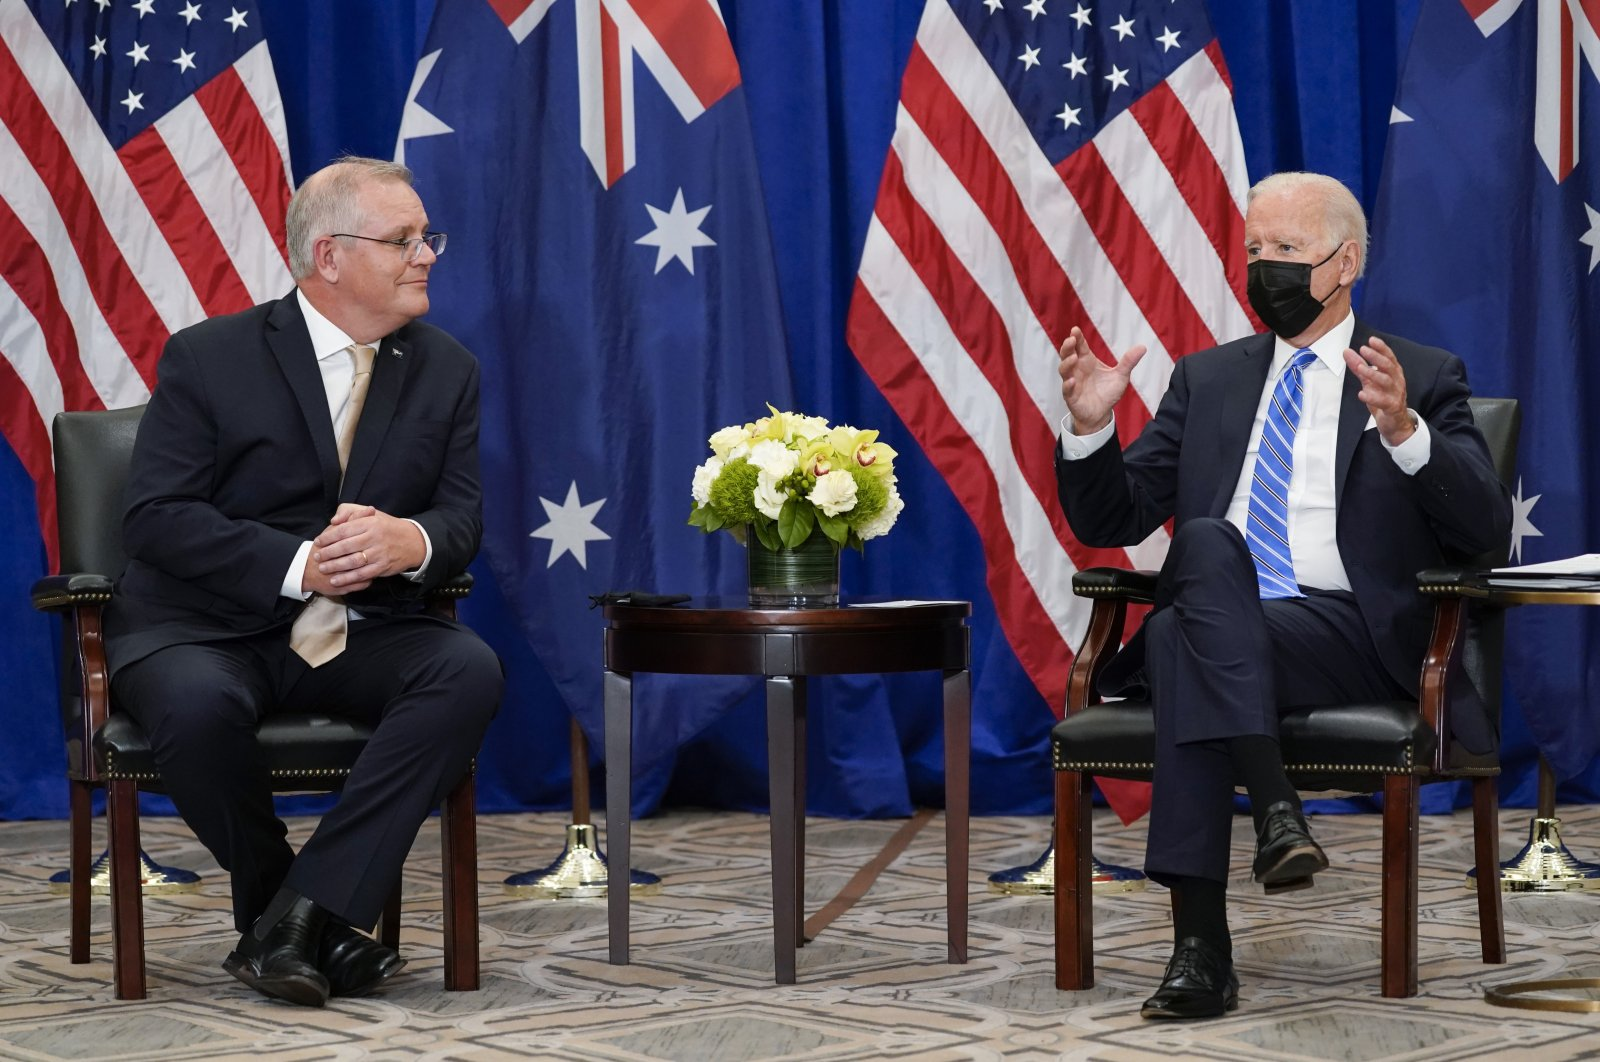 President Joe Biden (R) meets with Australian Prime Minister Scott Morrison at the Intercontinental Barclay Hotel during the United Nations General Assembly in New York, U.S., Sept. 21, 2021. (AP Photo / Evan Vucci, File)